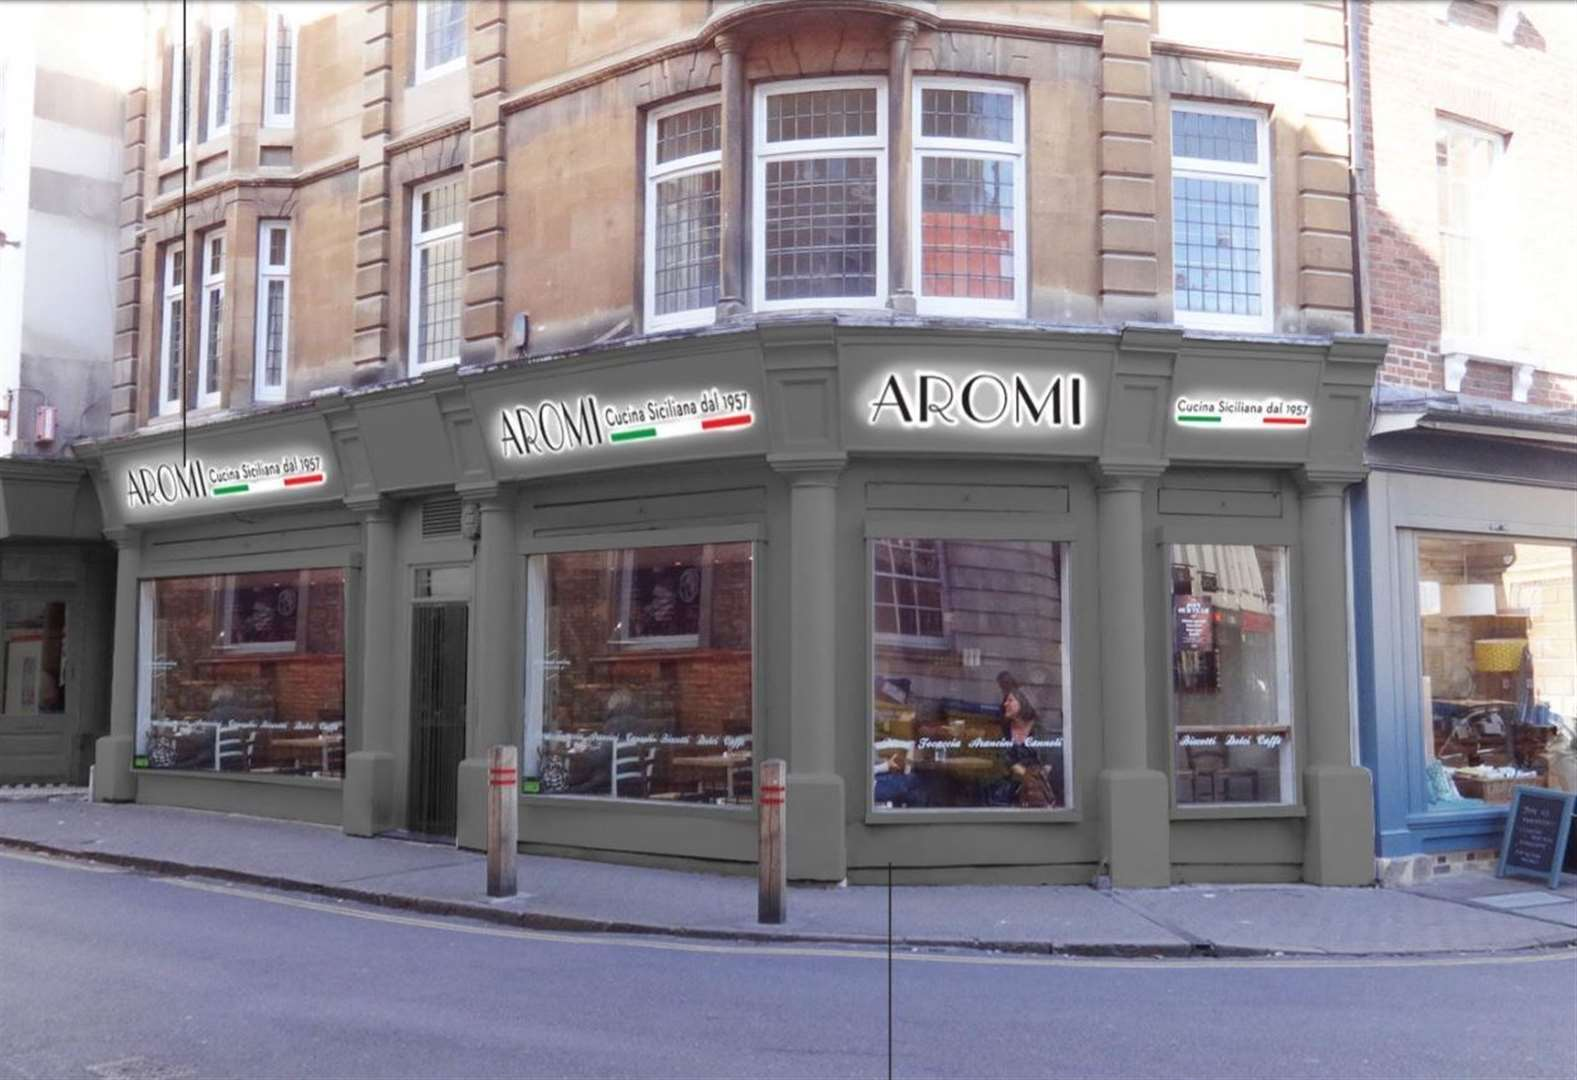 Major expansion planned for popular pizza café Aromi